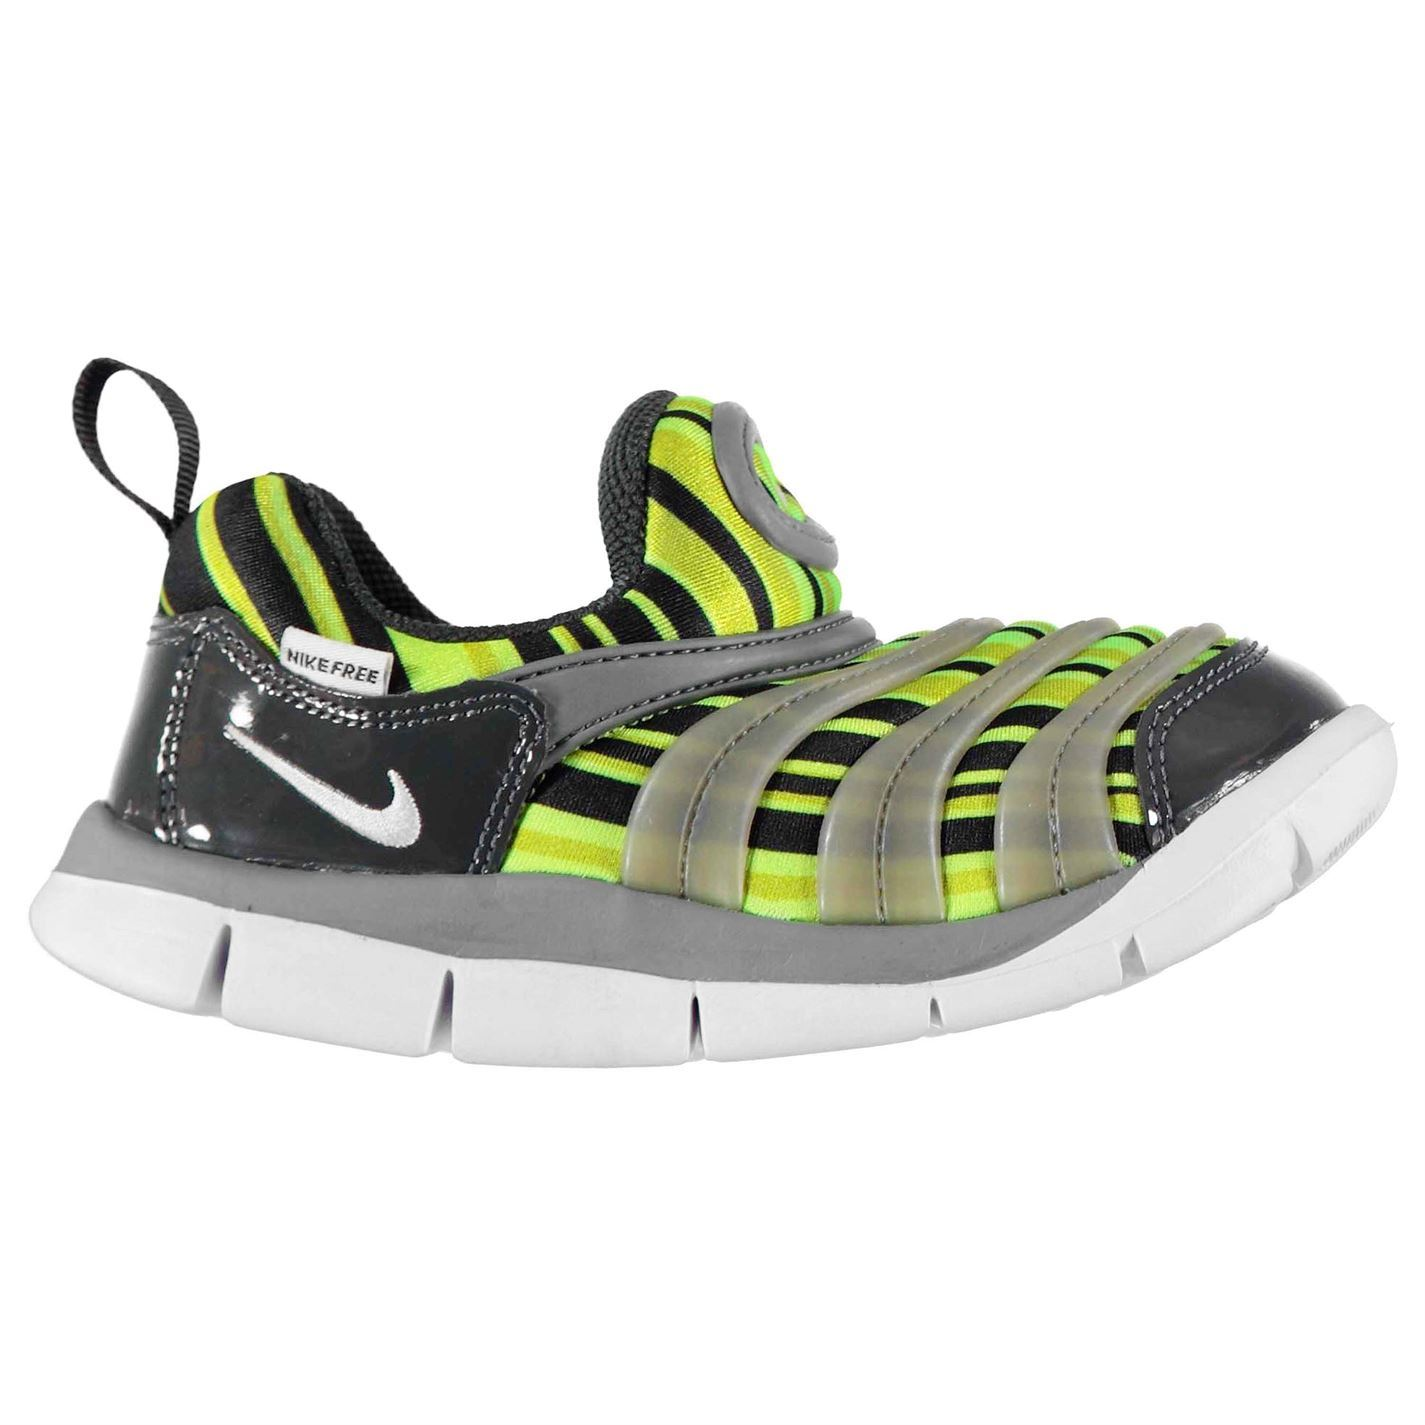 68487cb1a3a9 Details about Nike Dynamo Free Print Infant Boys Trainers  Yellow White Black Shoes Footwear